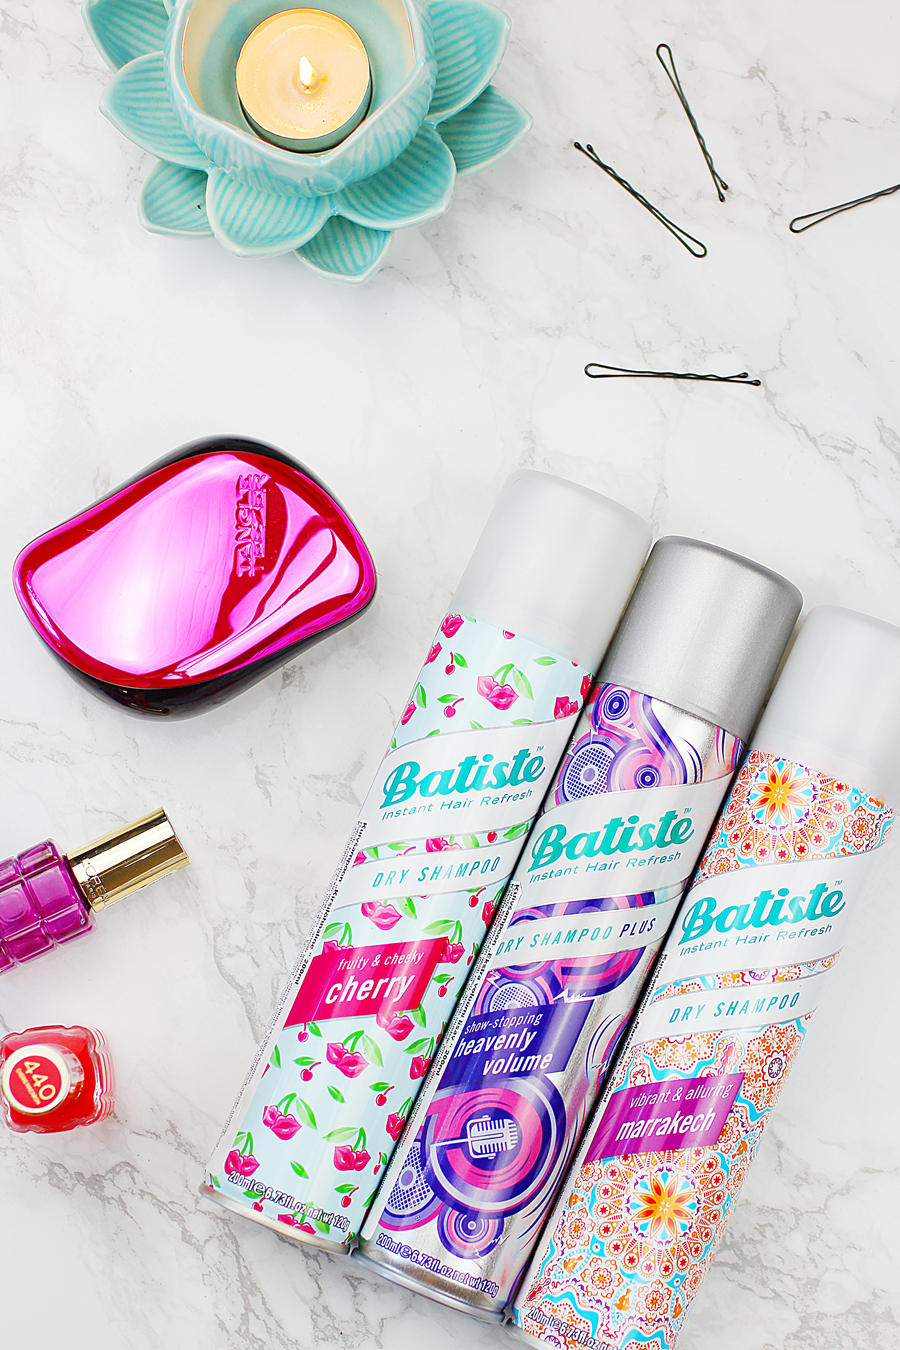 batiste heavenly volume